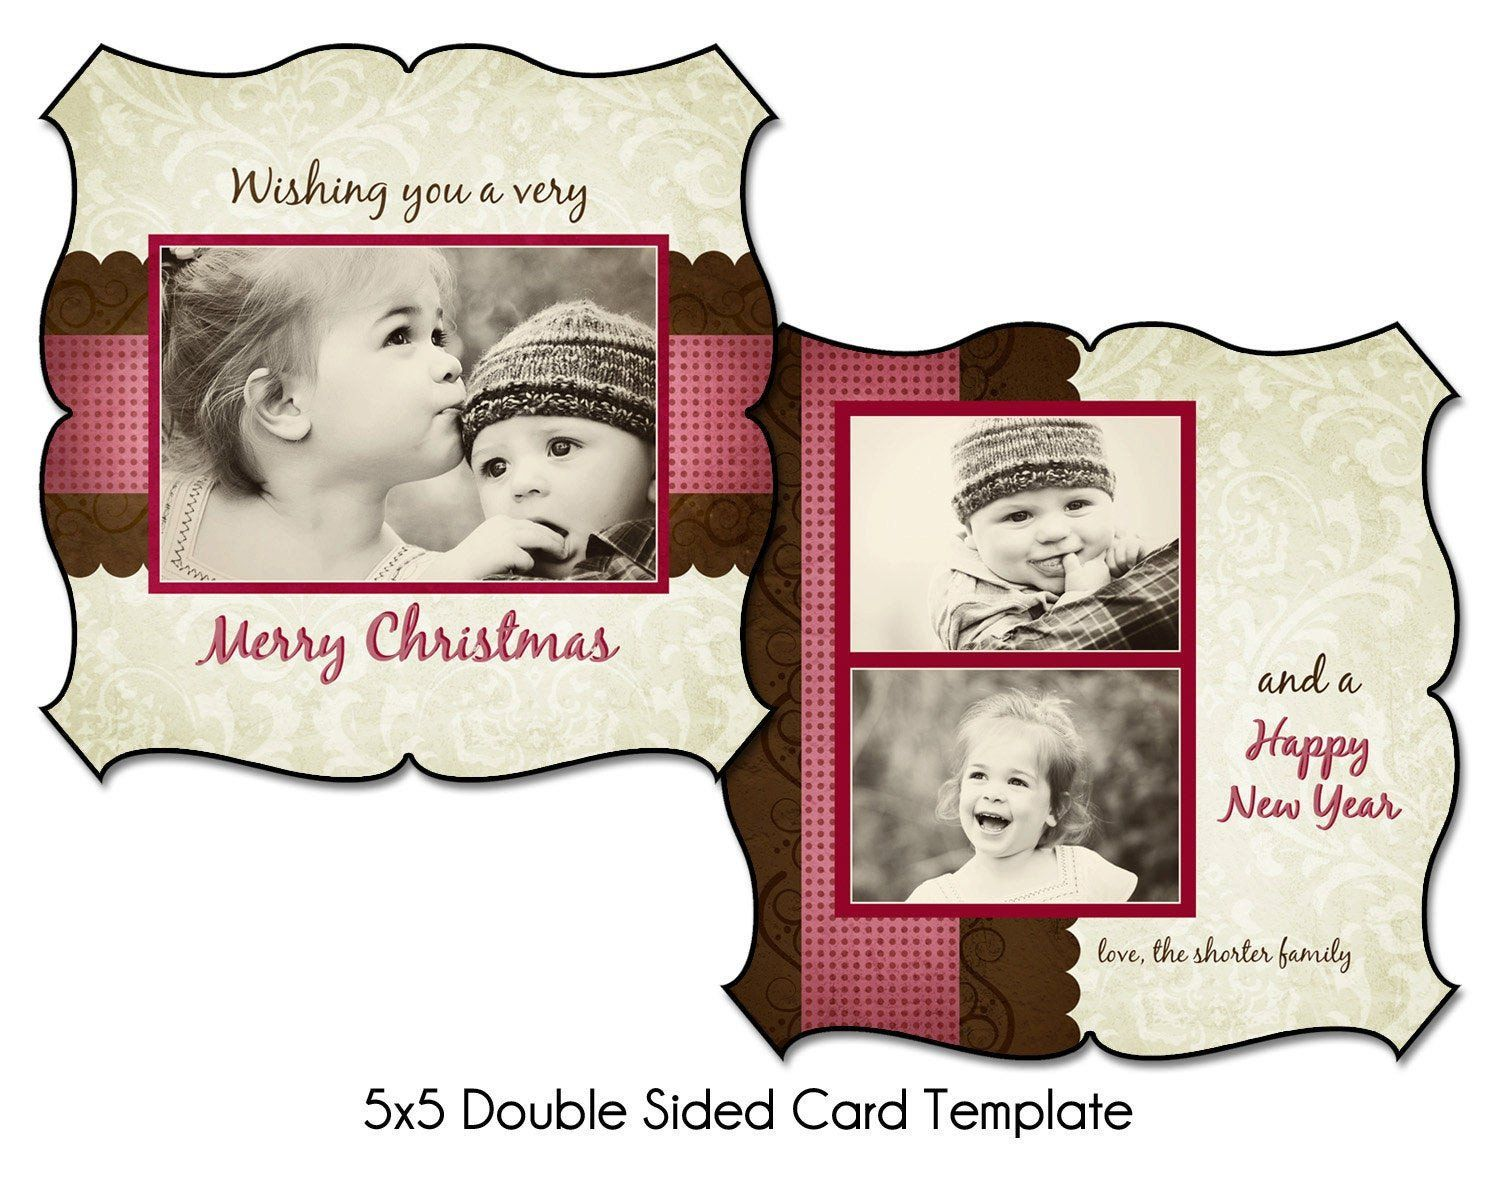 Two Sided Postcard Template Elegant Holiday Tidings 5x5 Double Sided Christmas Card Template Christmas Card Template Postcard Template Card Templates